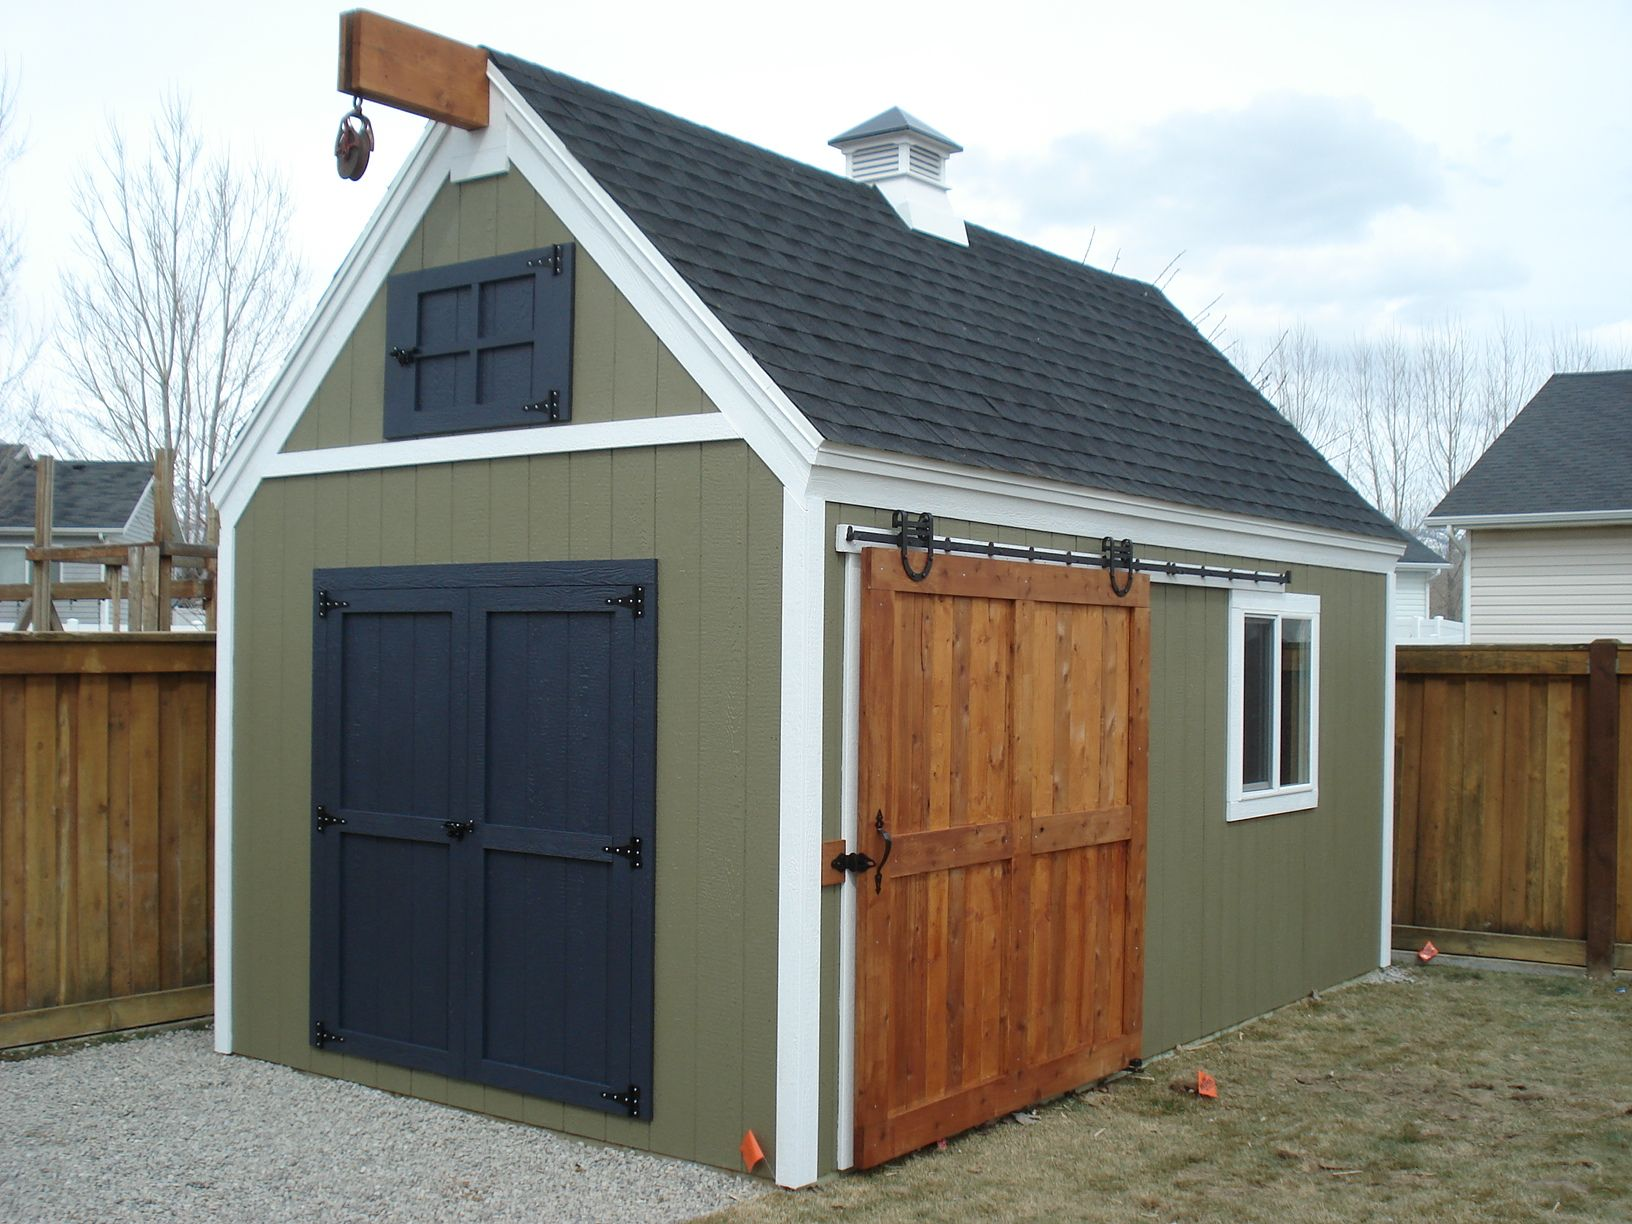 Wright S Shed Co Gallery Of Custom Sheds Detached Garages Chicken Coops And More View Images Our Custom Sheds In Ut Building A Shed Shed Plans Shed Design